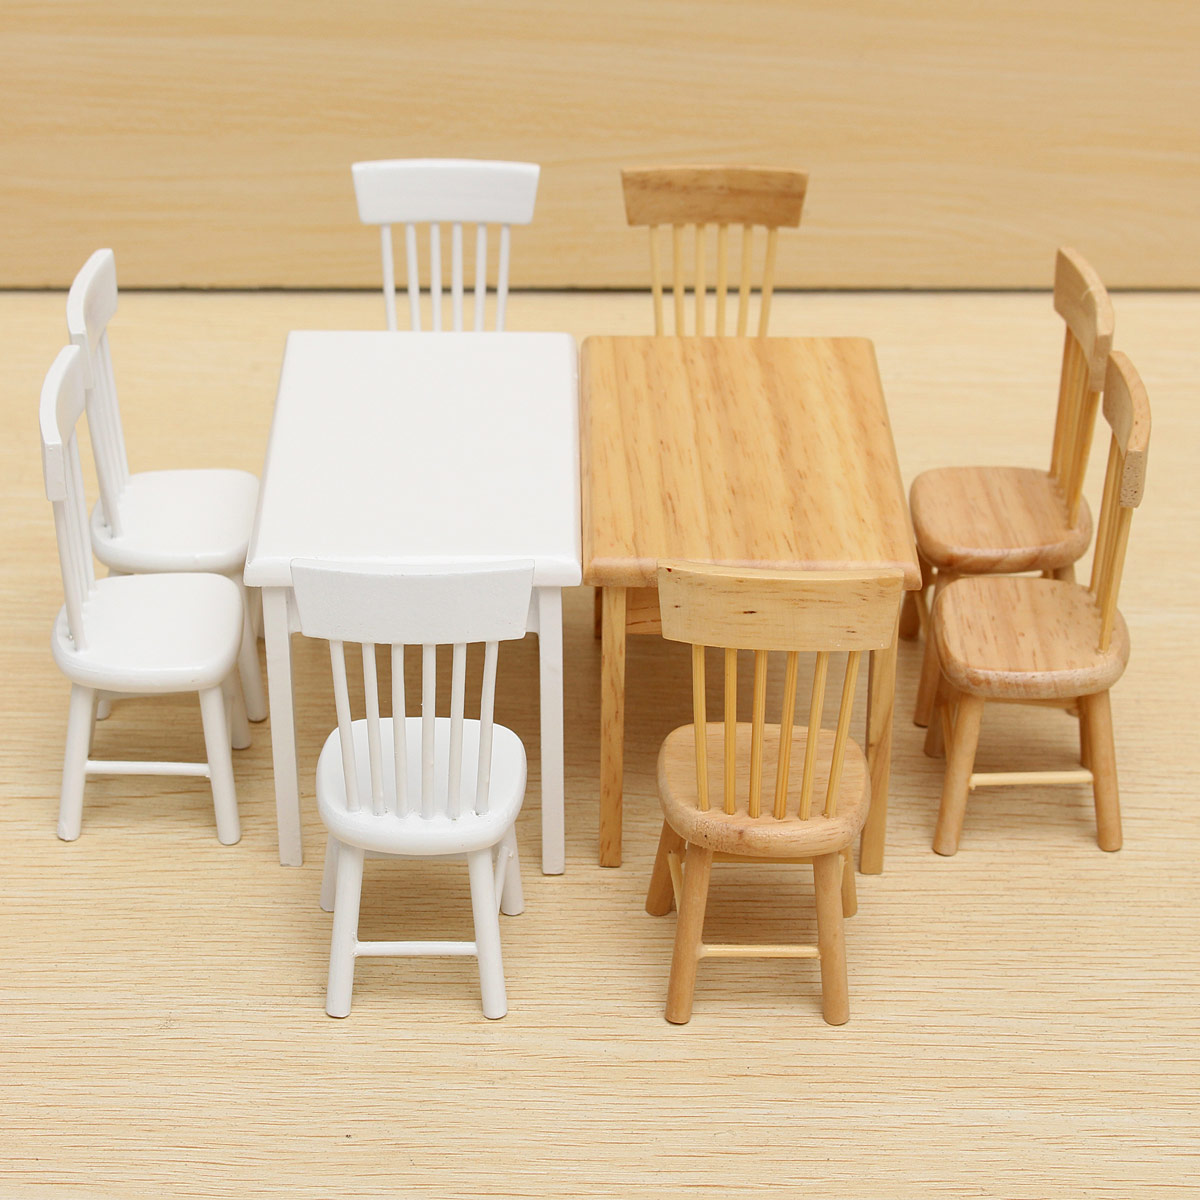 1 12 dollhouse miniature furniture wooden dining room table 4 chairs set gift ebay - Dollhouse dining room furniture ...